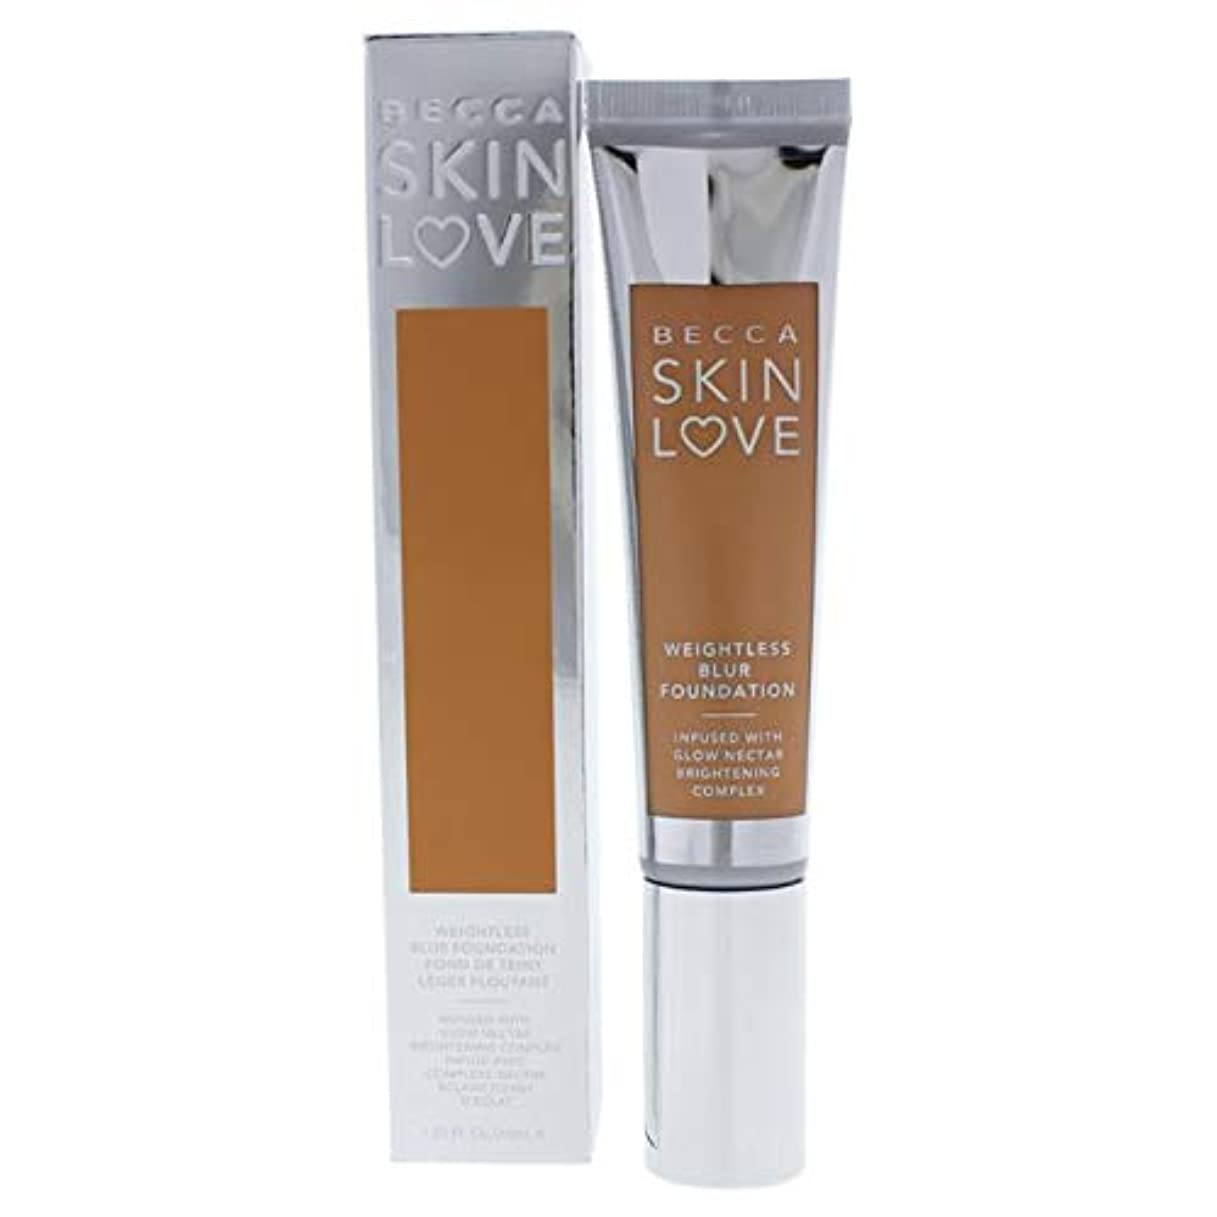 ささいな状況畝間ベッカ Skin Love Weightless Blur Foundation - # Noisette 35ml/1.23oz並行輸入品